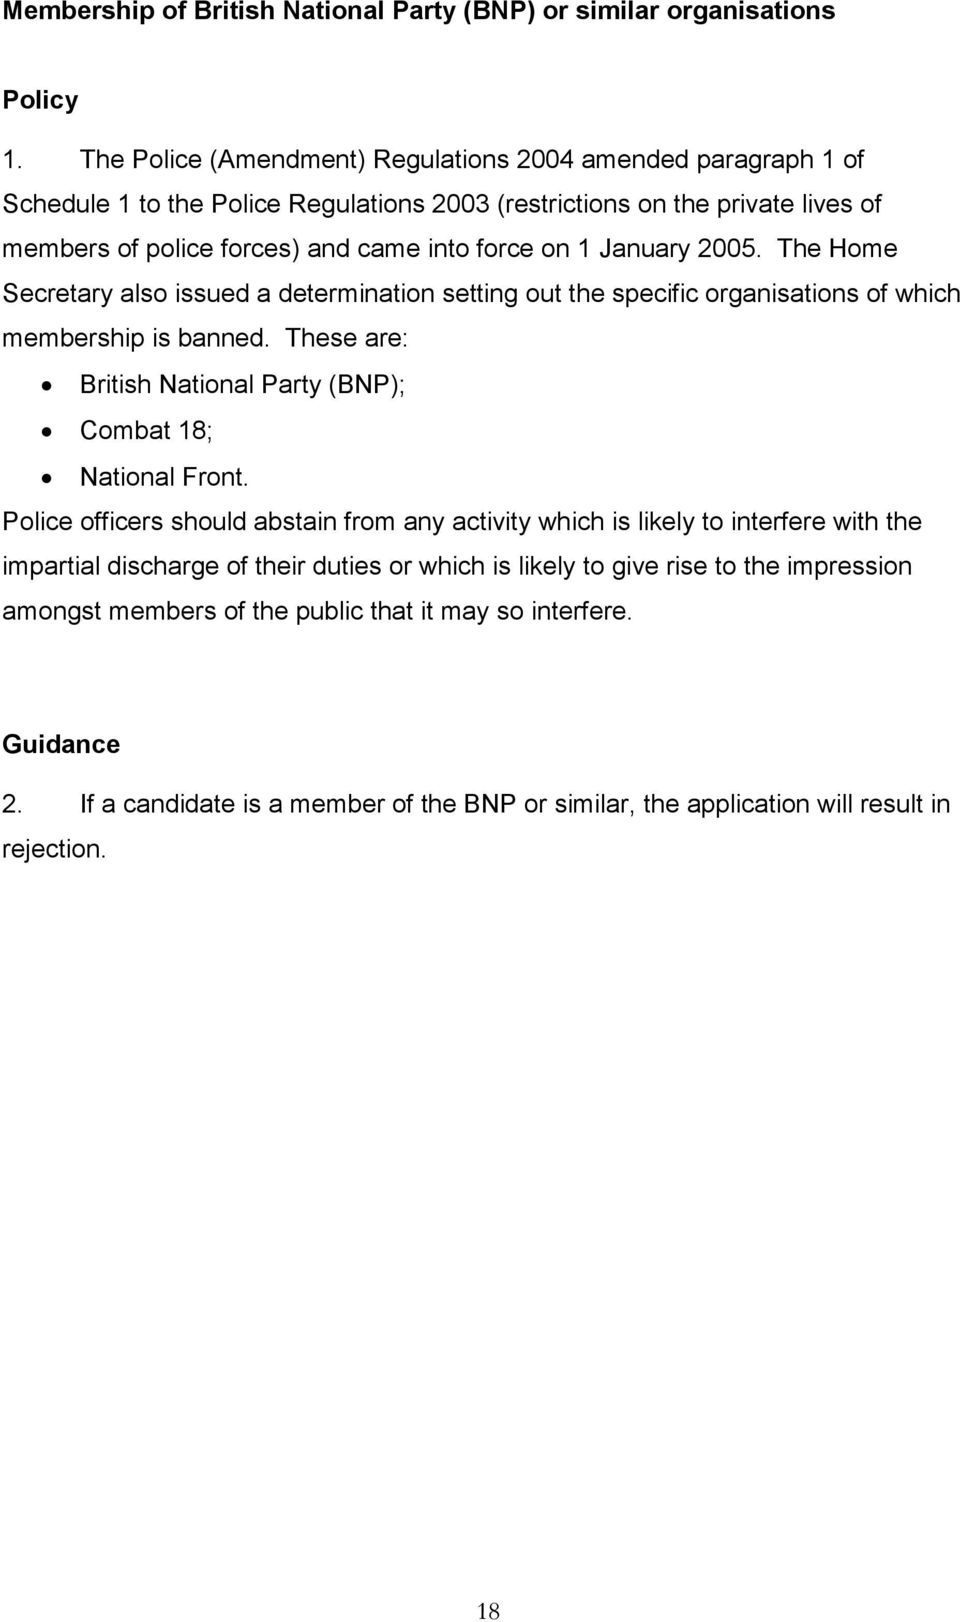 January 2005. The Home Secretary also issued a determination setting out the specific organisations of which membership is banned. These are: British National Party (BNP); Combat 18; National Front.